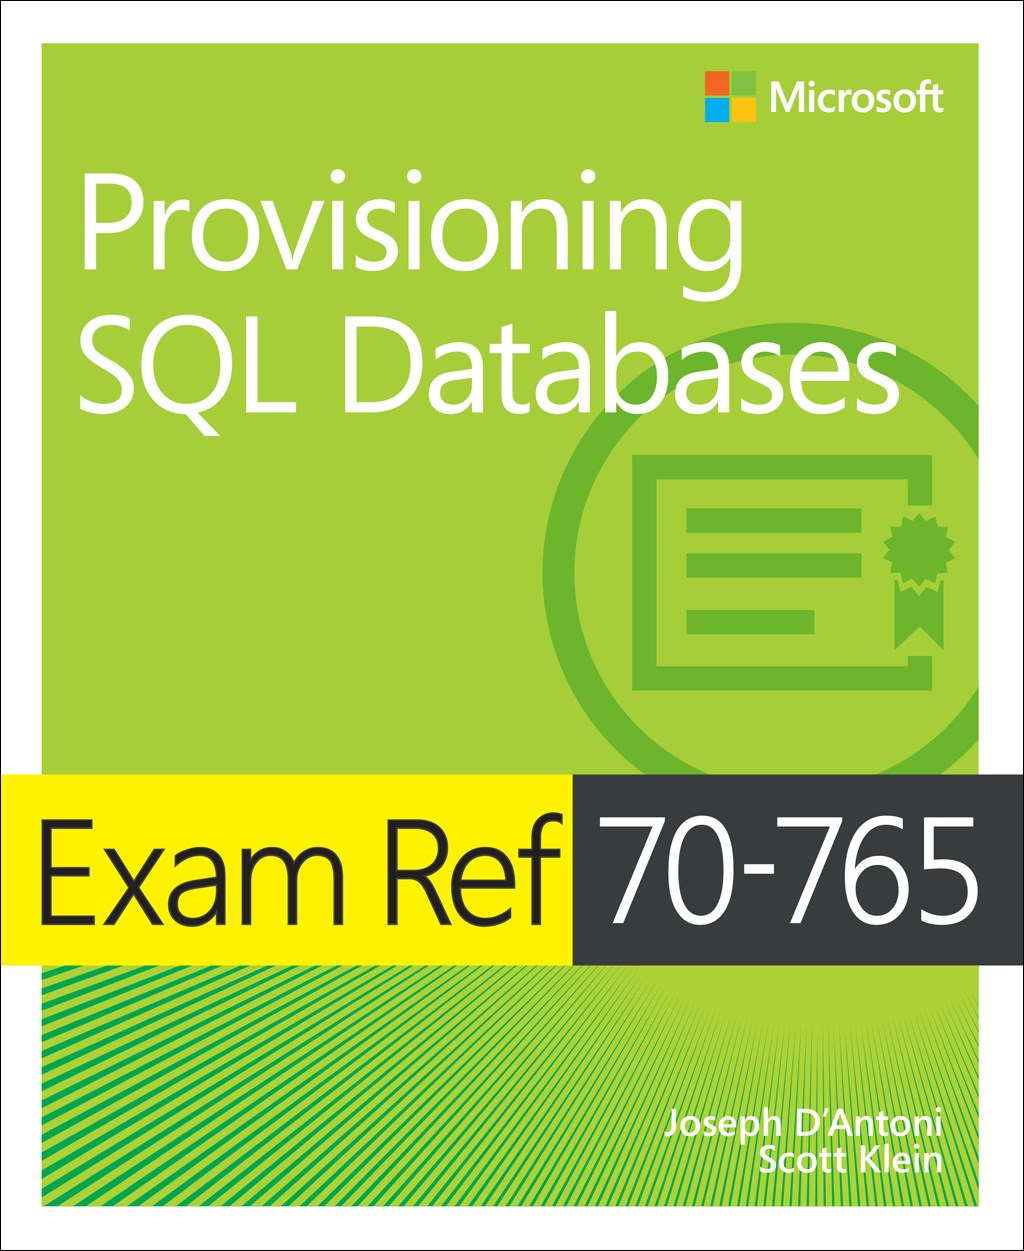 Exam Ref 70-765 Provisioning SQL Databases